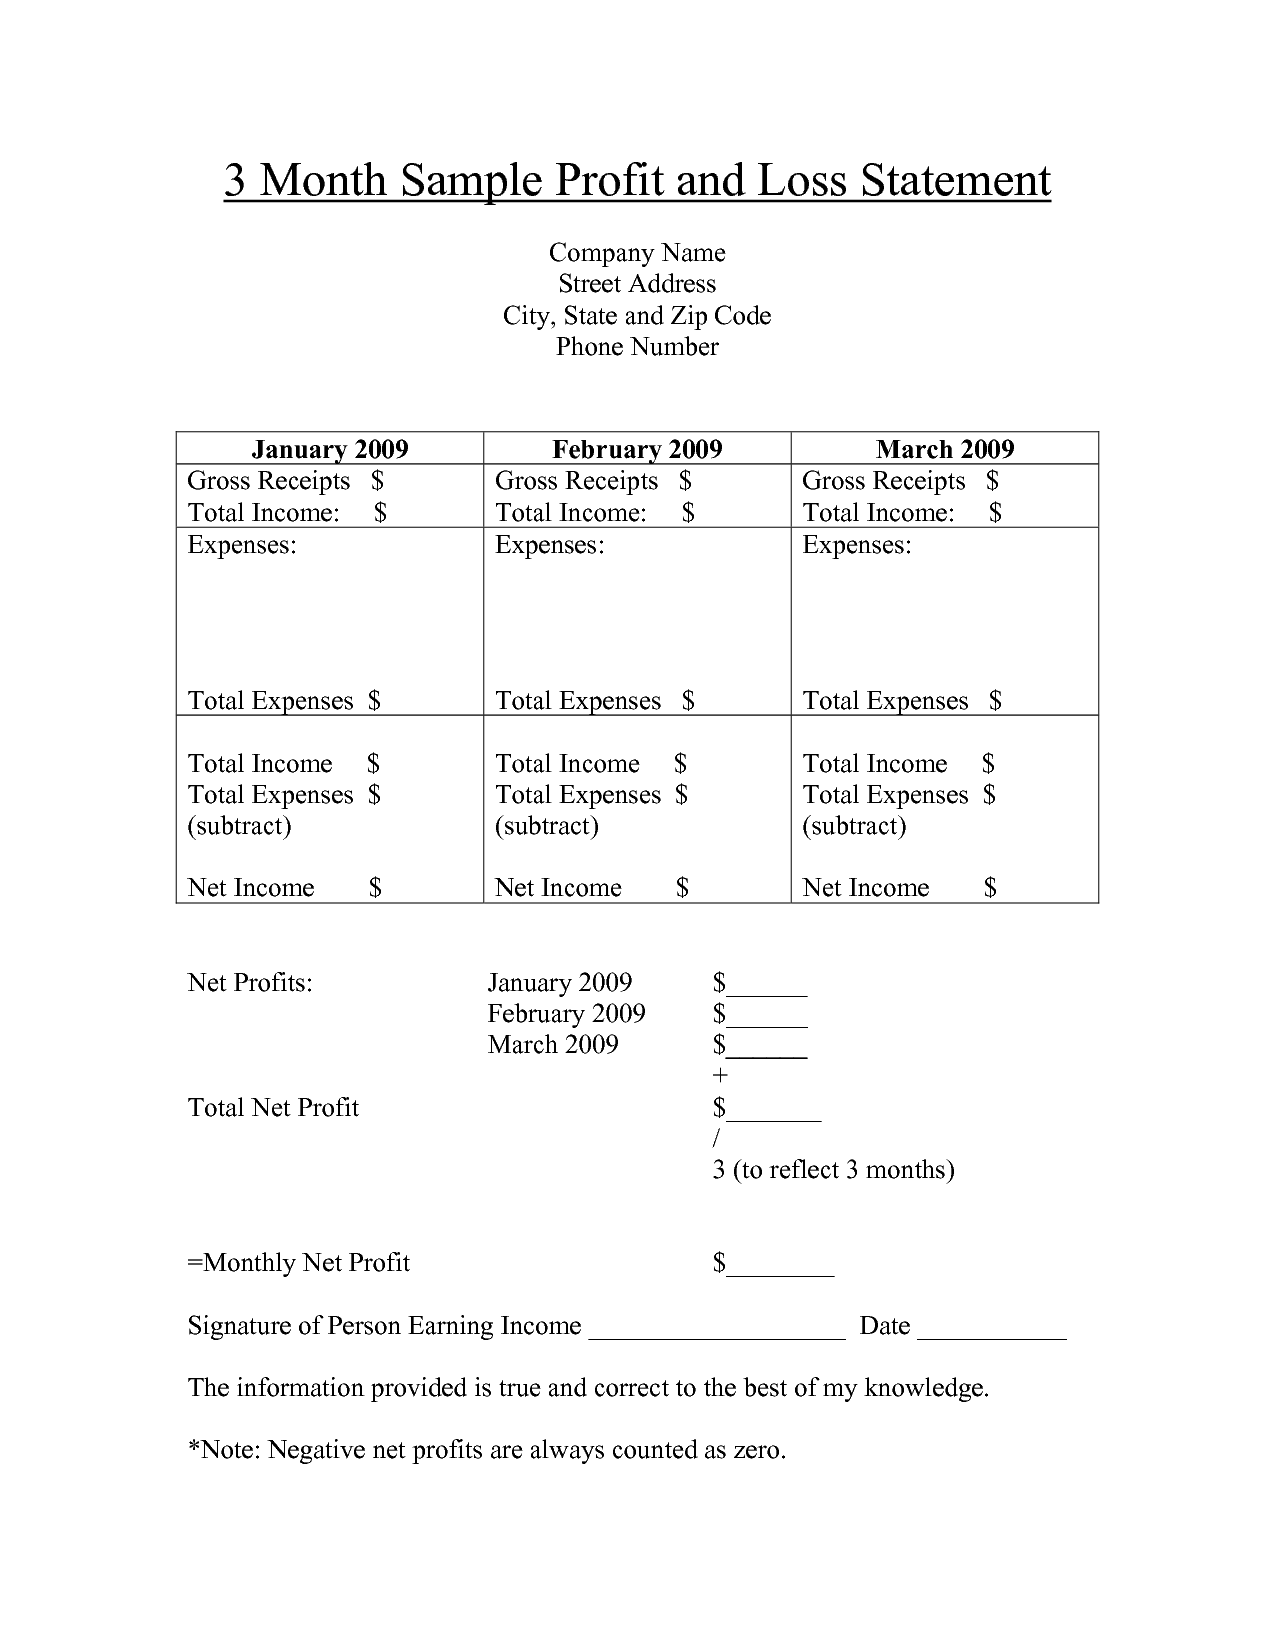 Printable Profit And Loss Statement Profit And Loss Blank Form, Profit And  Loss Template, Profit And Loss Statement Template Cyberuse,  Profit Statement Template